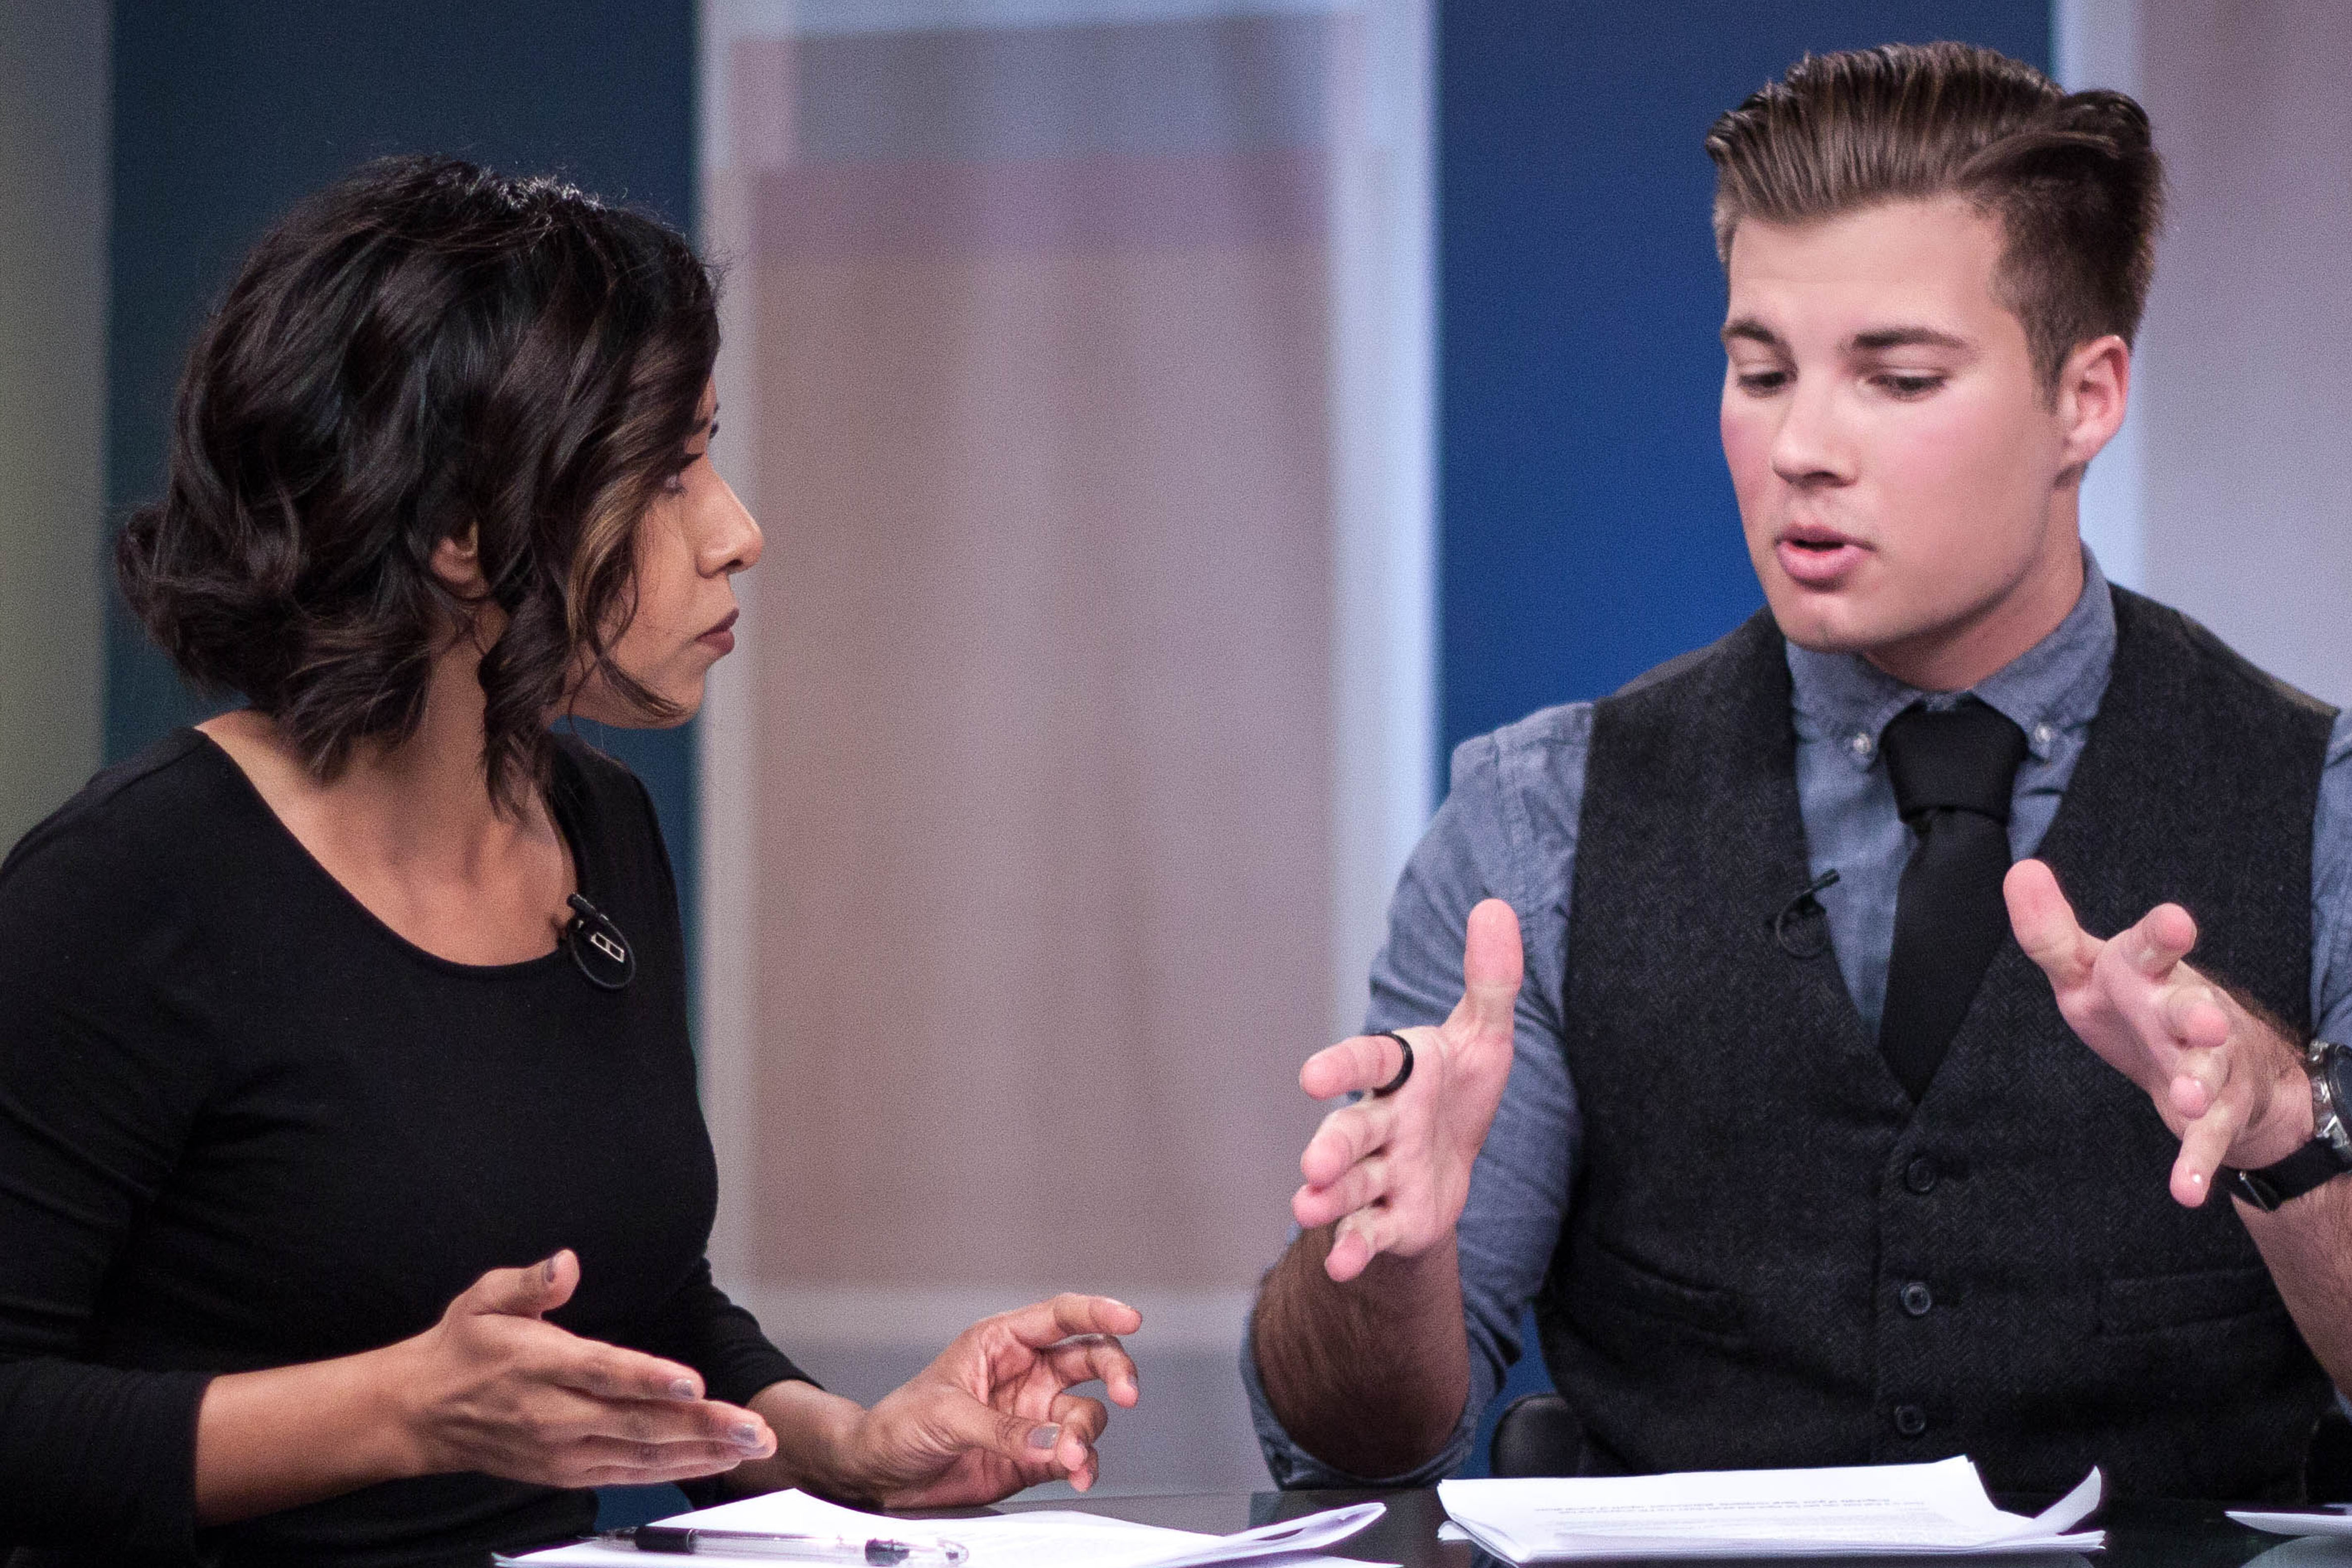 the report production still with two anchors